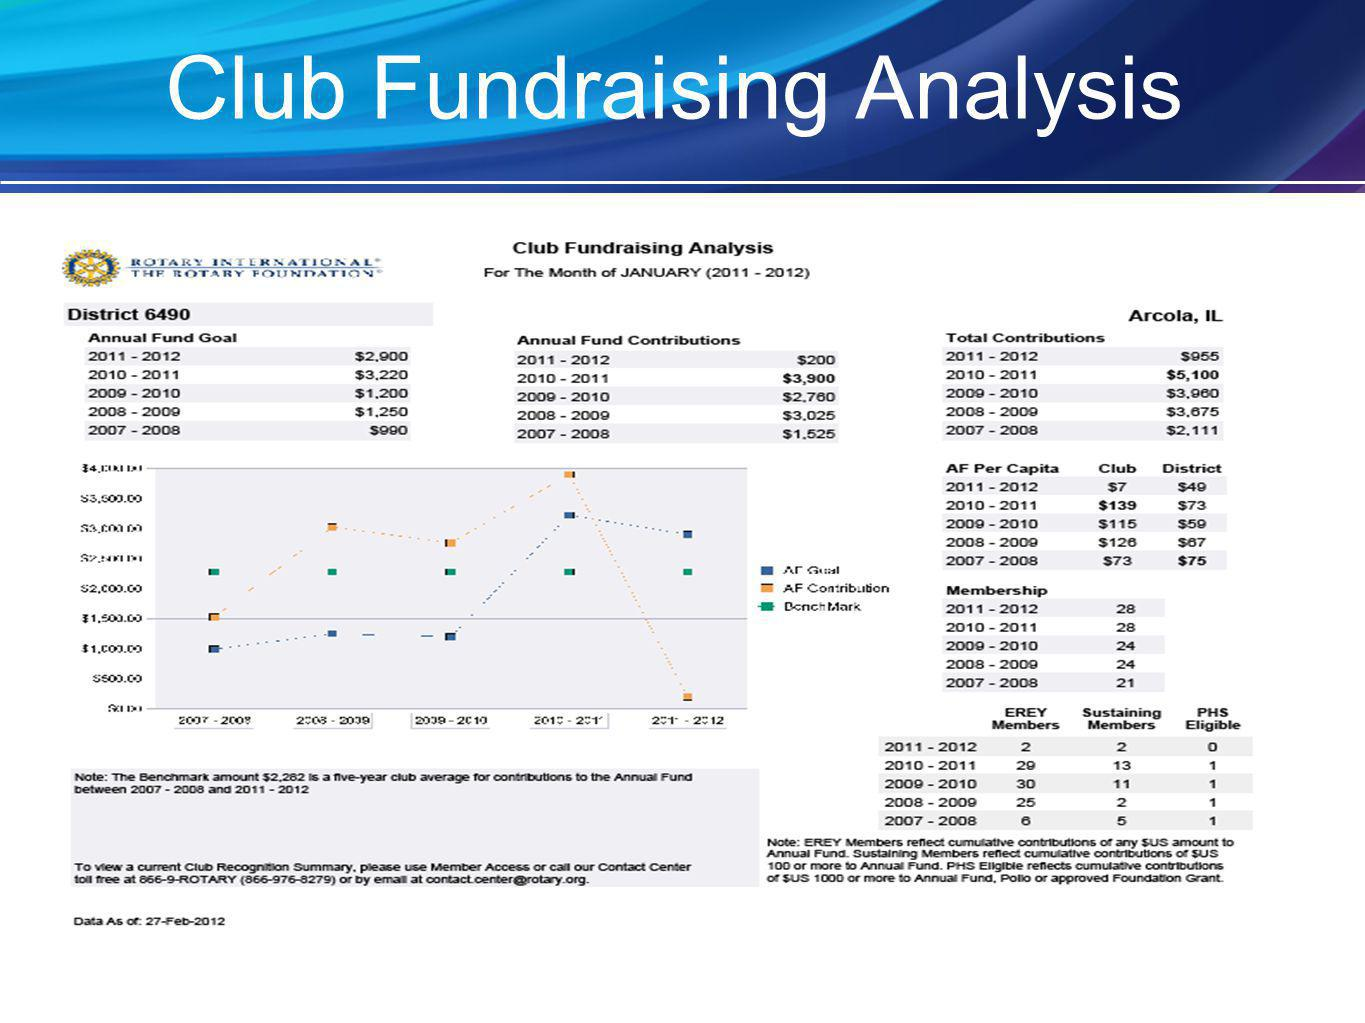 Club Fundraising Analysis